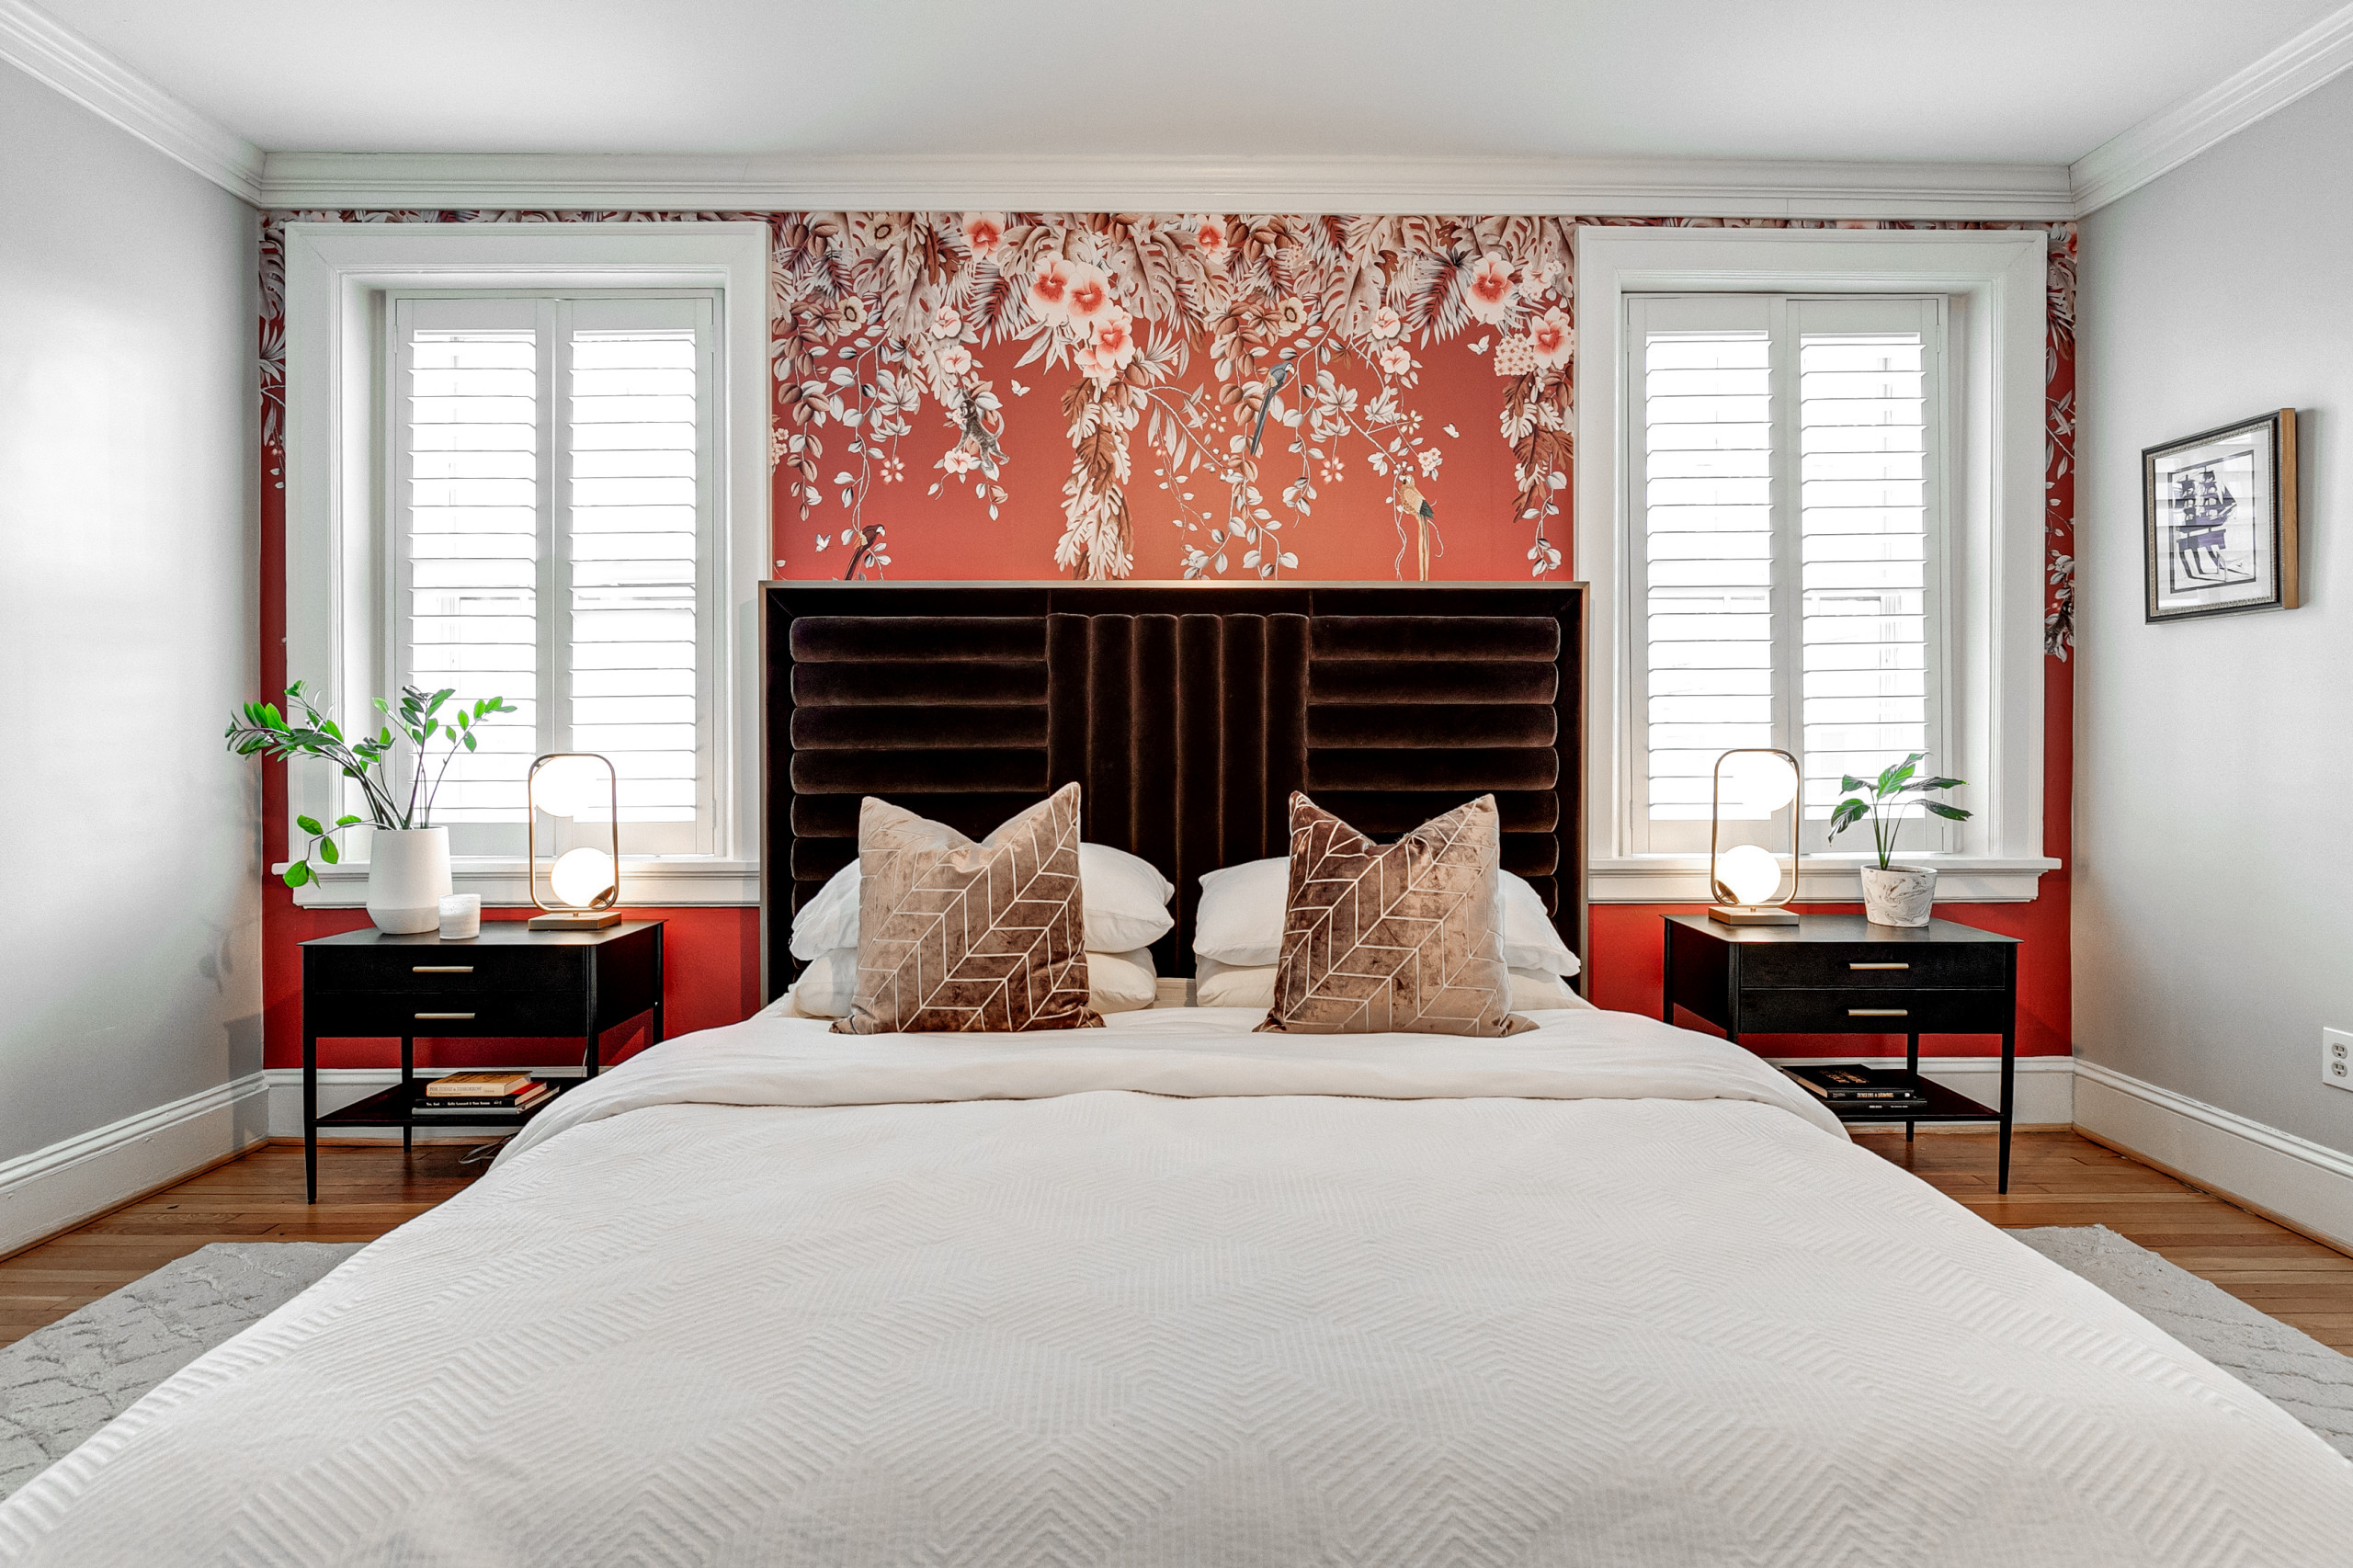 75 Beautiful Bedroom Pictures Ideas January 2021 Houzz